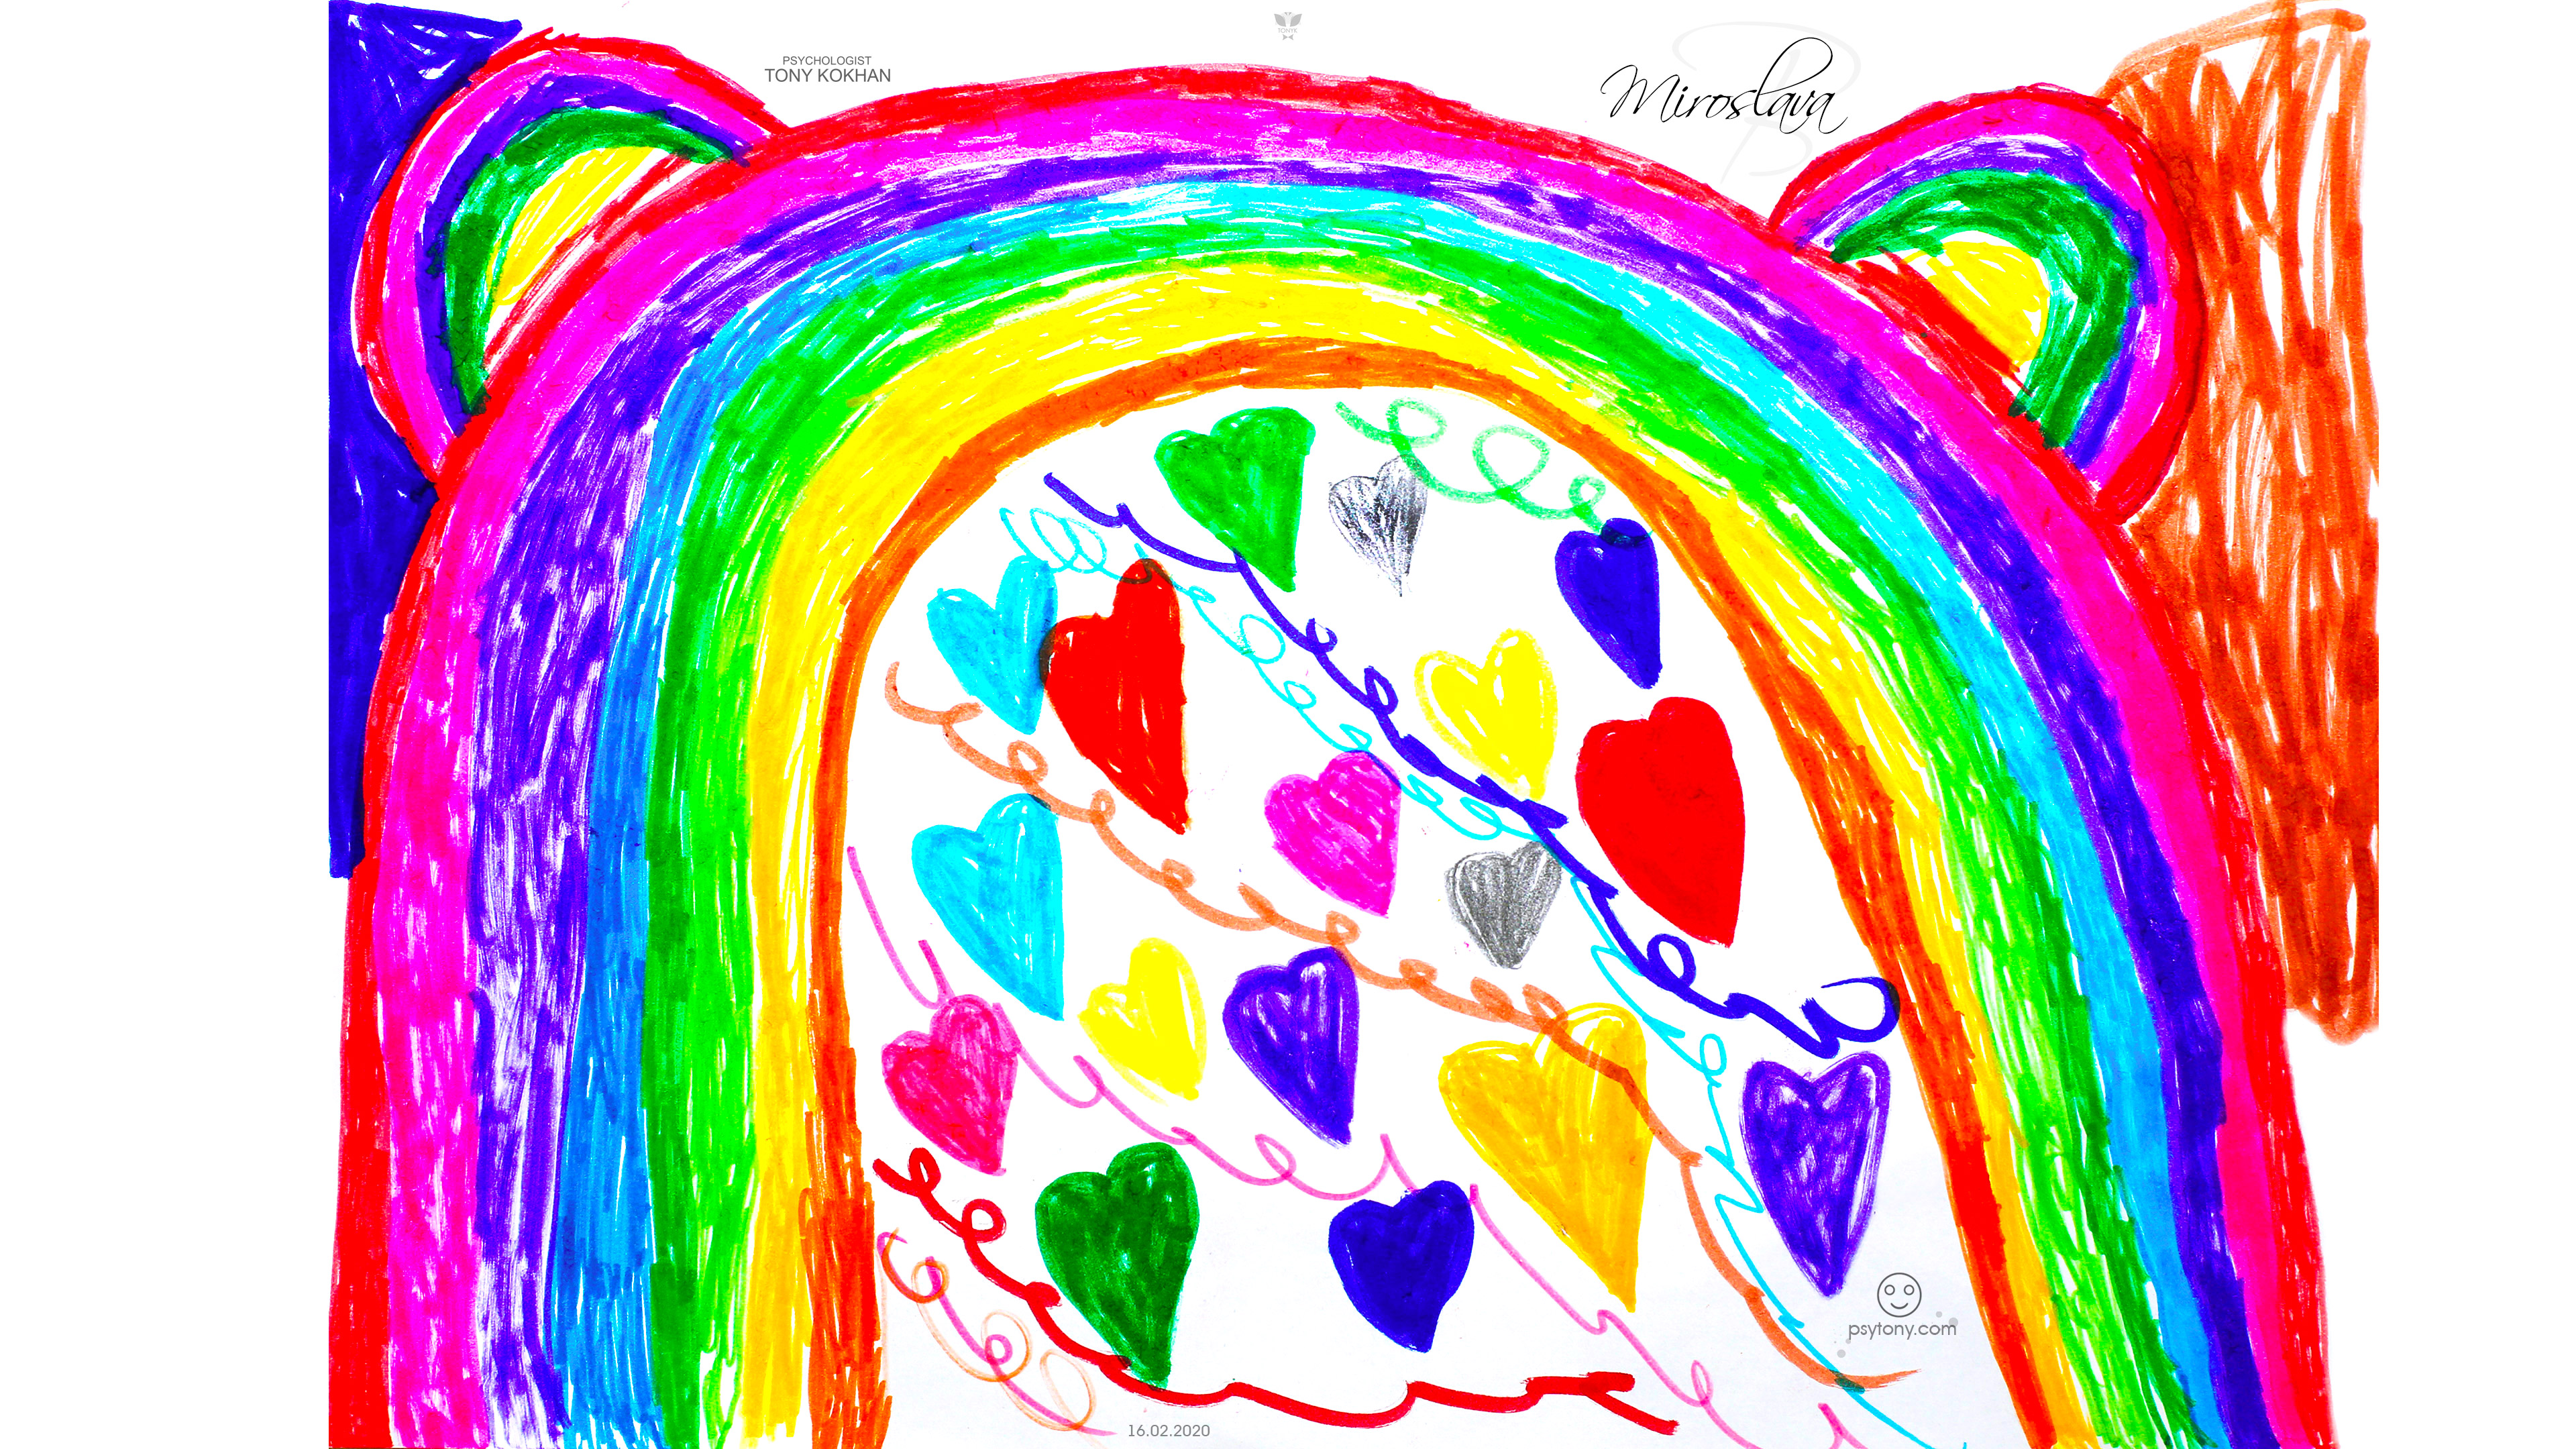 Miroslava-Soul-Girl-Rainbow-Ears-Many-Hearts-Love-Emotions-Threads-Energy-Markers-Picture-Art-2020-Multicolors-4K-Wallpapers-by-Psychologist-Tony-Kokhan-www.psytony.com-image